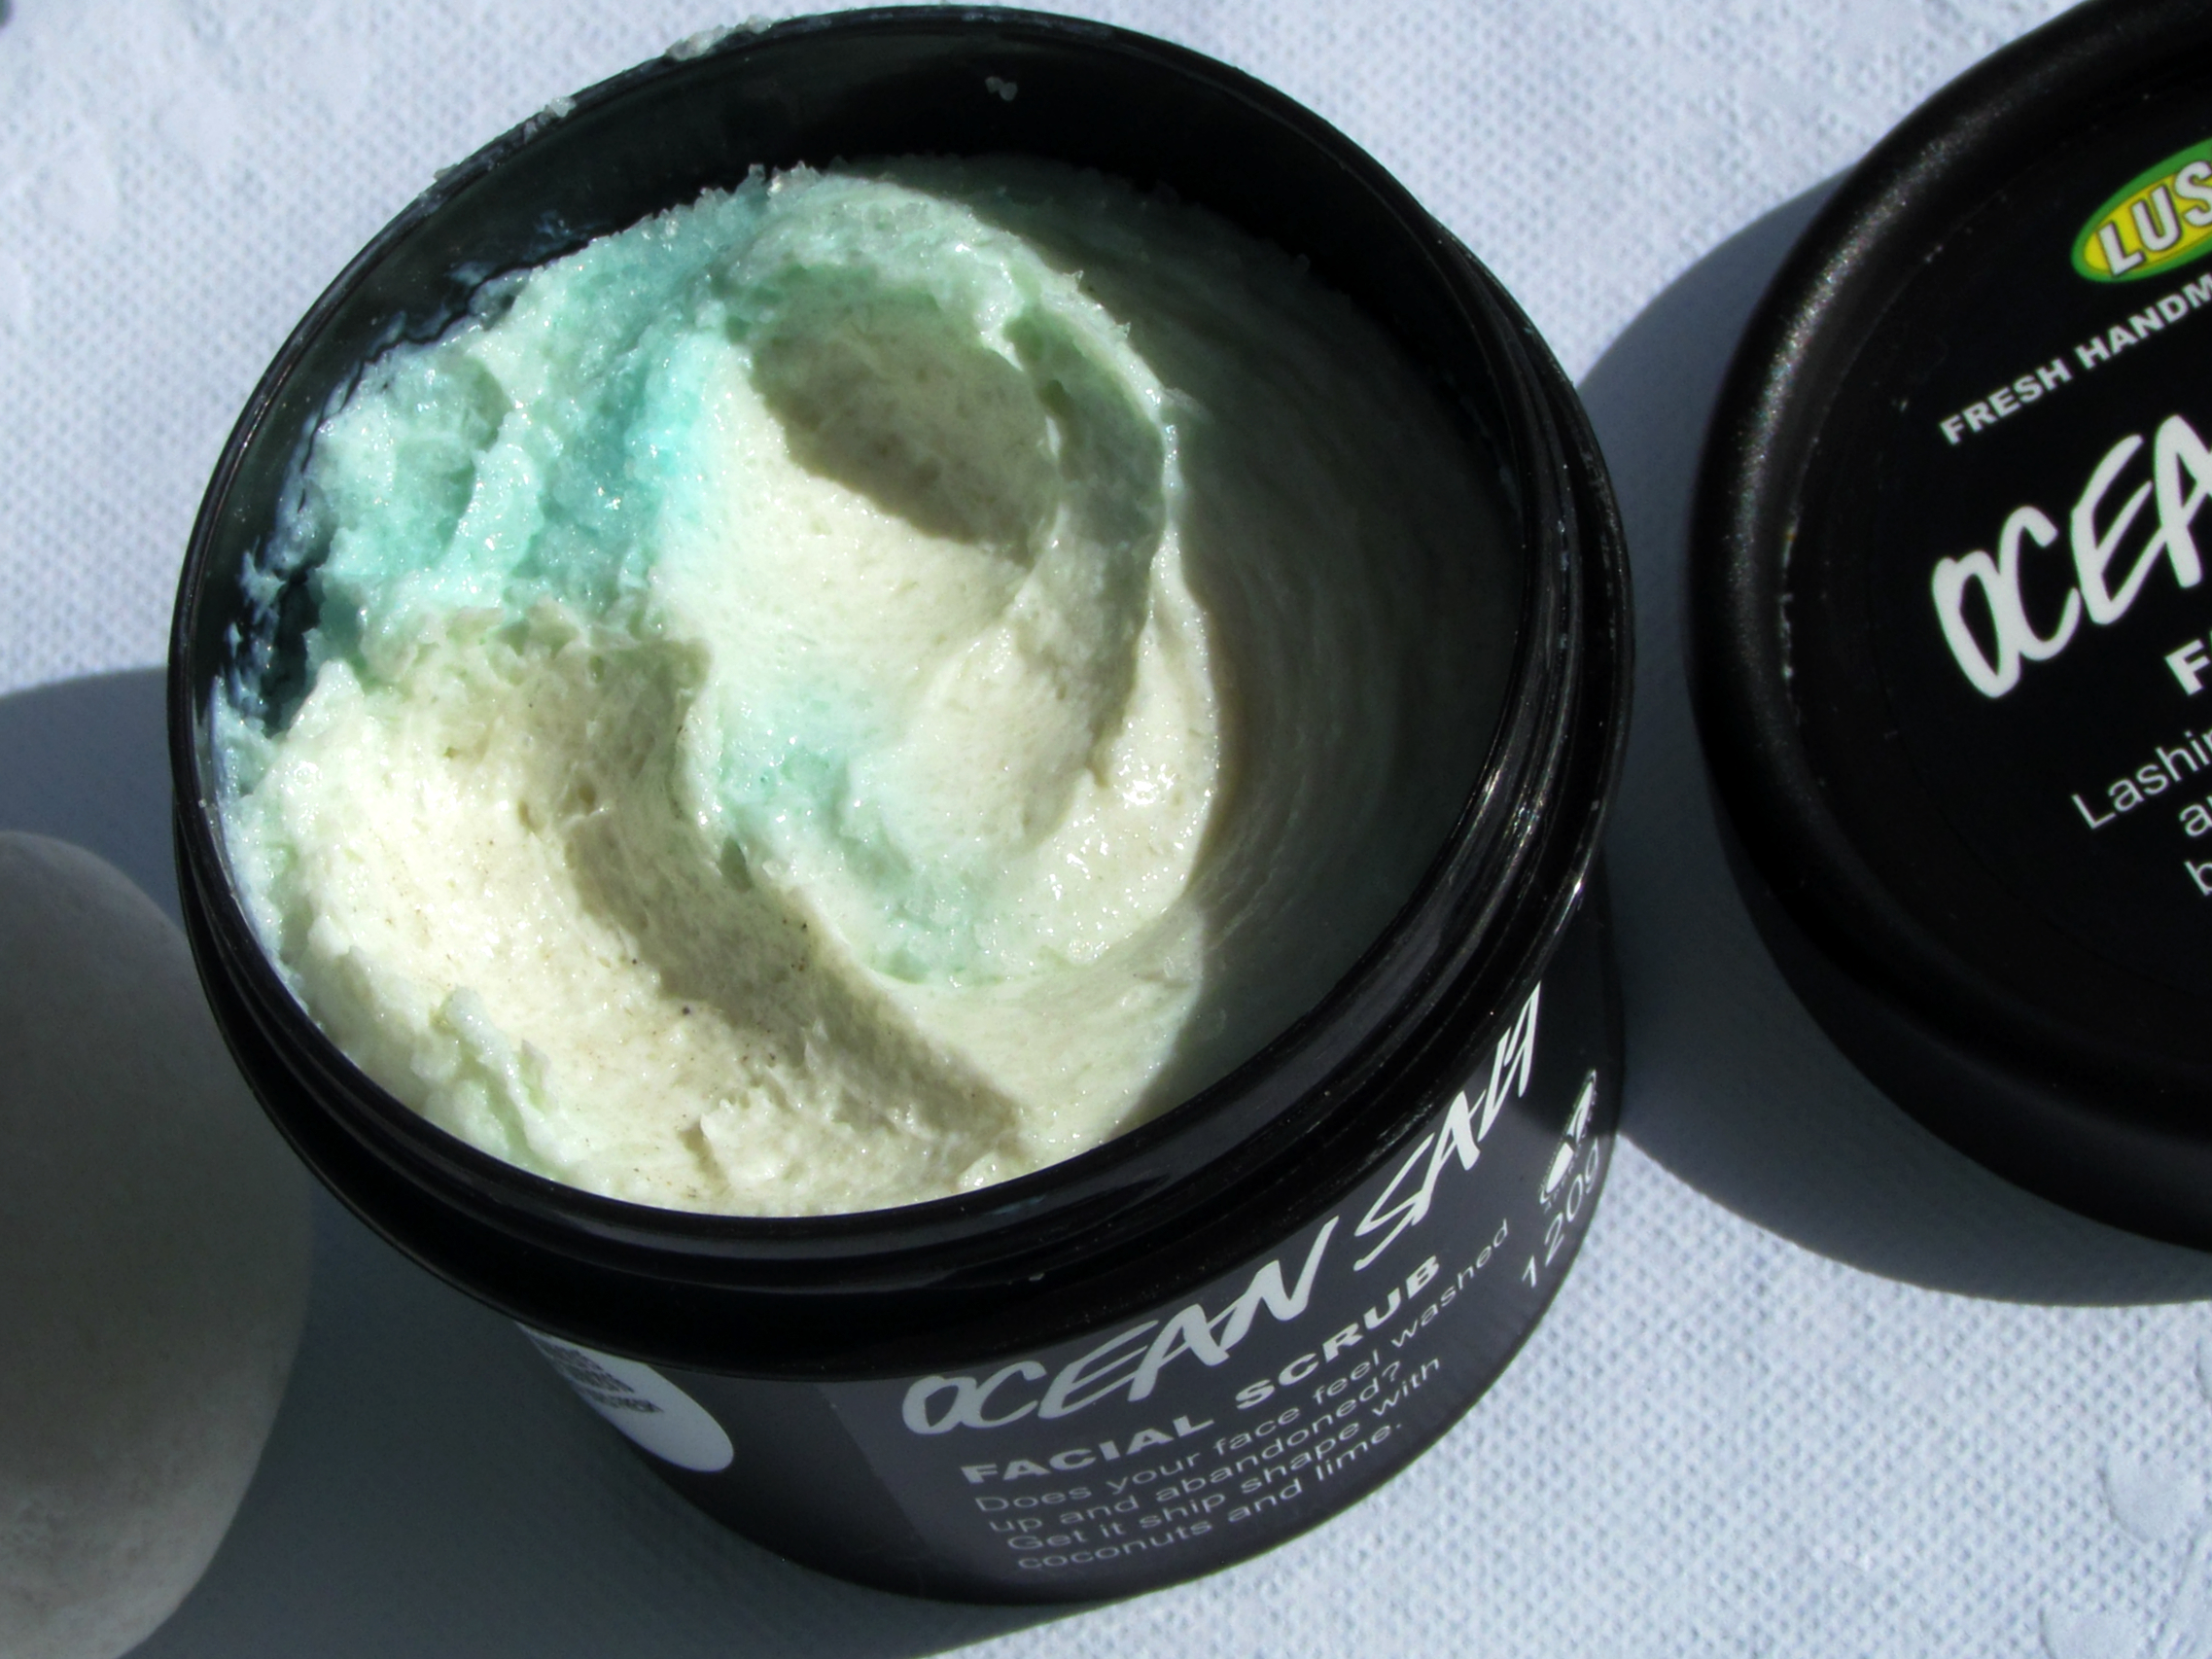 LUSH Ocean Salt Facial Scrub | Review